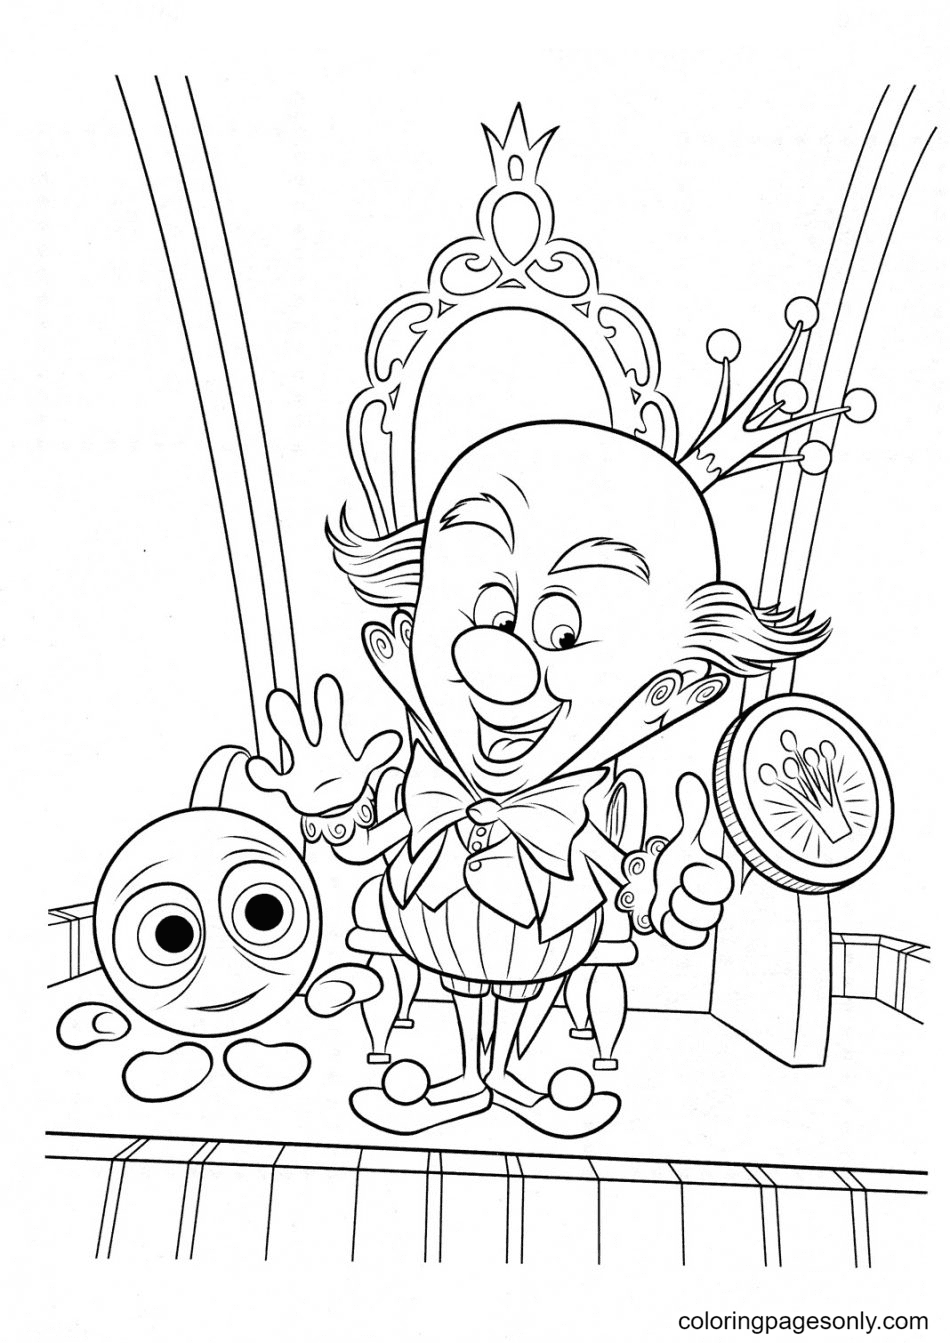 King Candy Is The Ruler of Sugar Rush Coloring Page